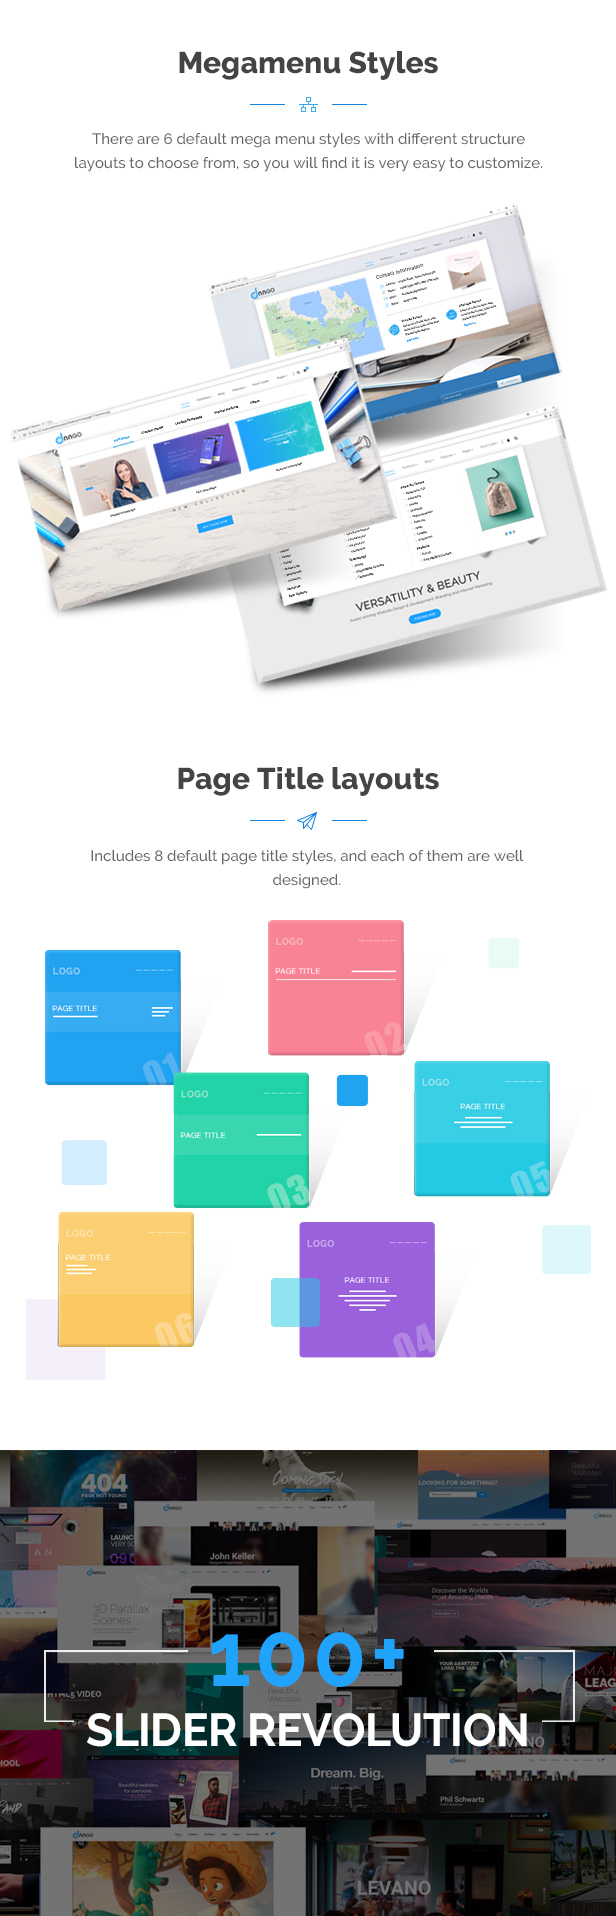 DNG - Responsive HTML5 Template - 26